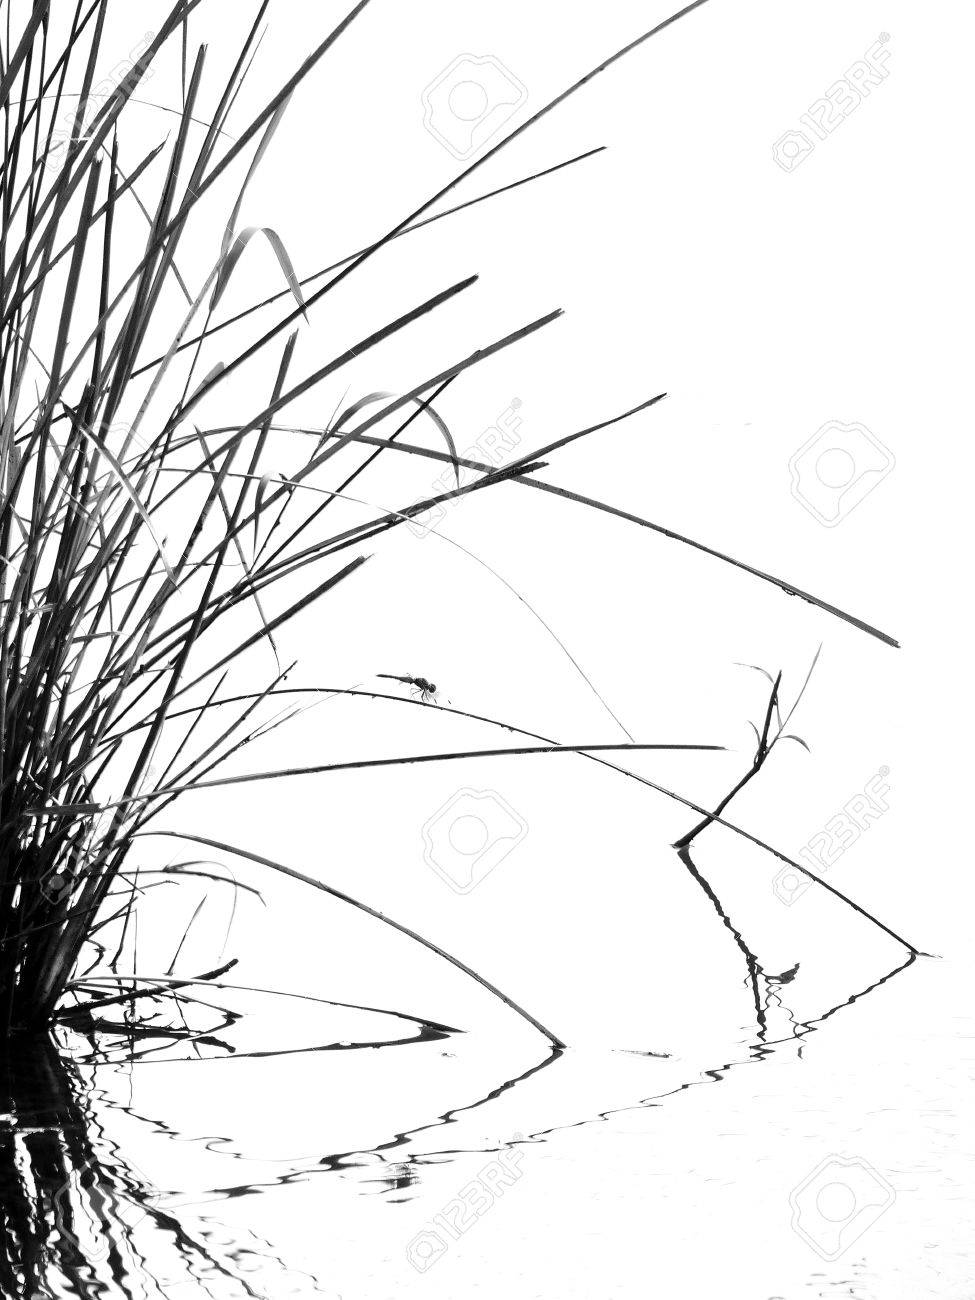 Tall Grass Silhouette To Stock Photo Tall Grass Silhouette Black And White Grass Black And White Photo Picture